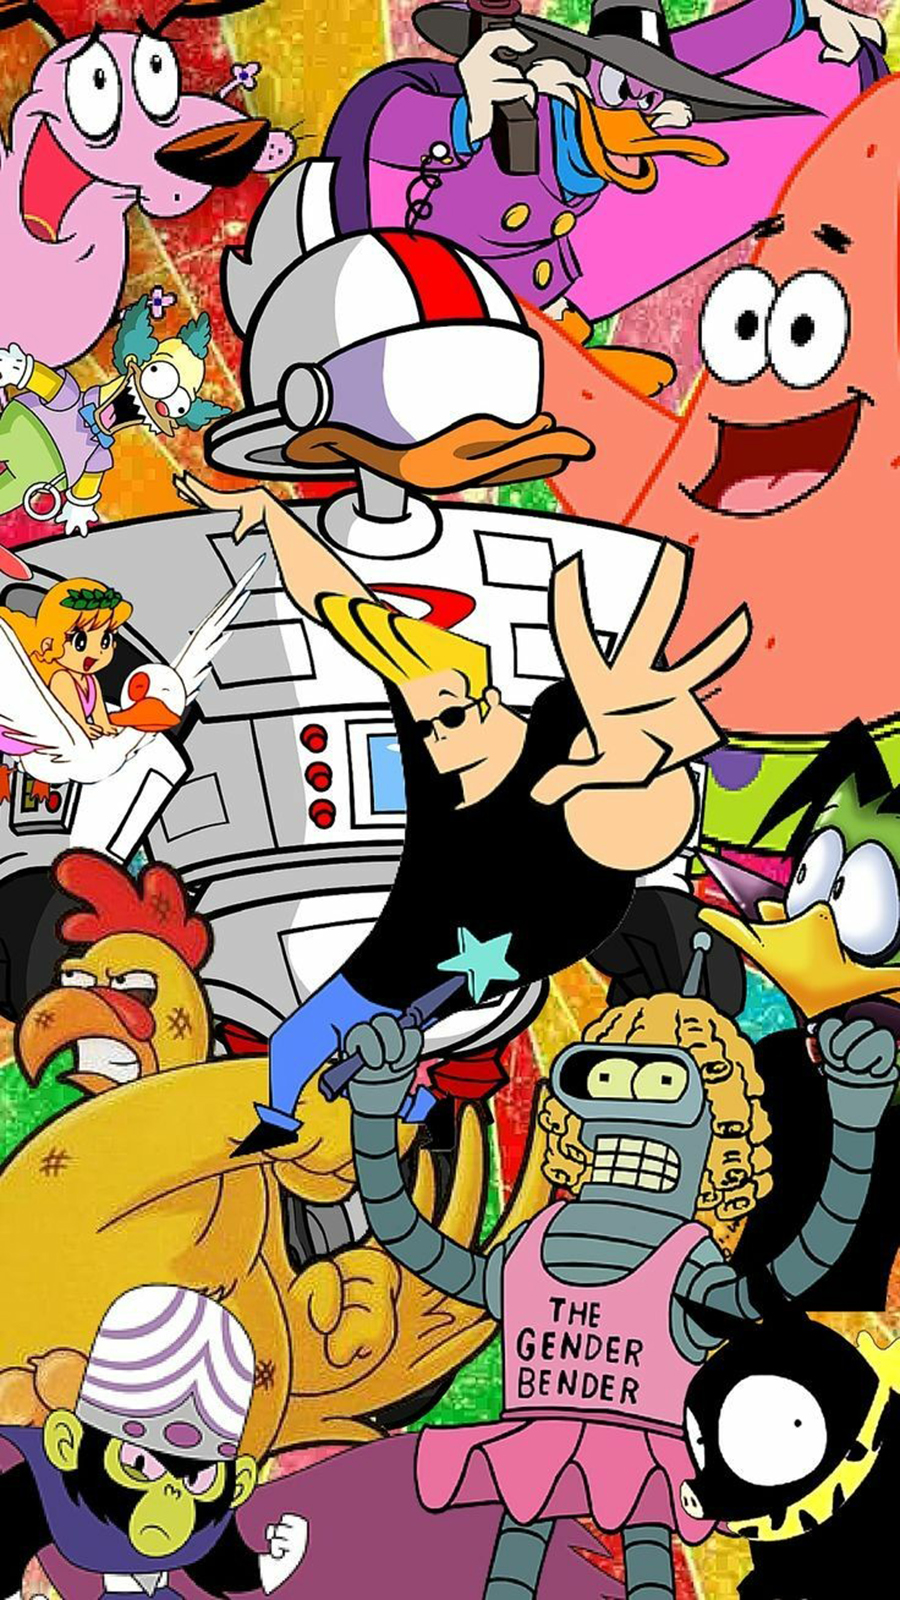 Cartoonnetwork Wallpapers Free Download for Phone – Best Wallpapers